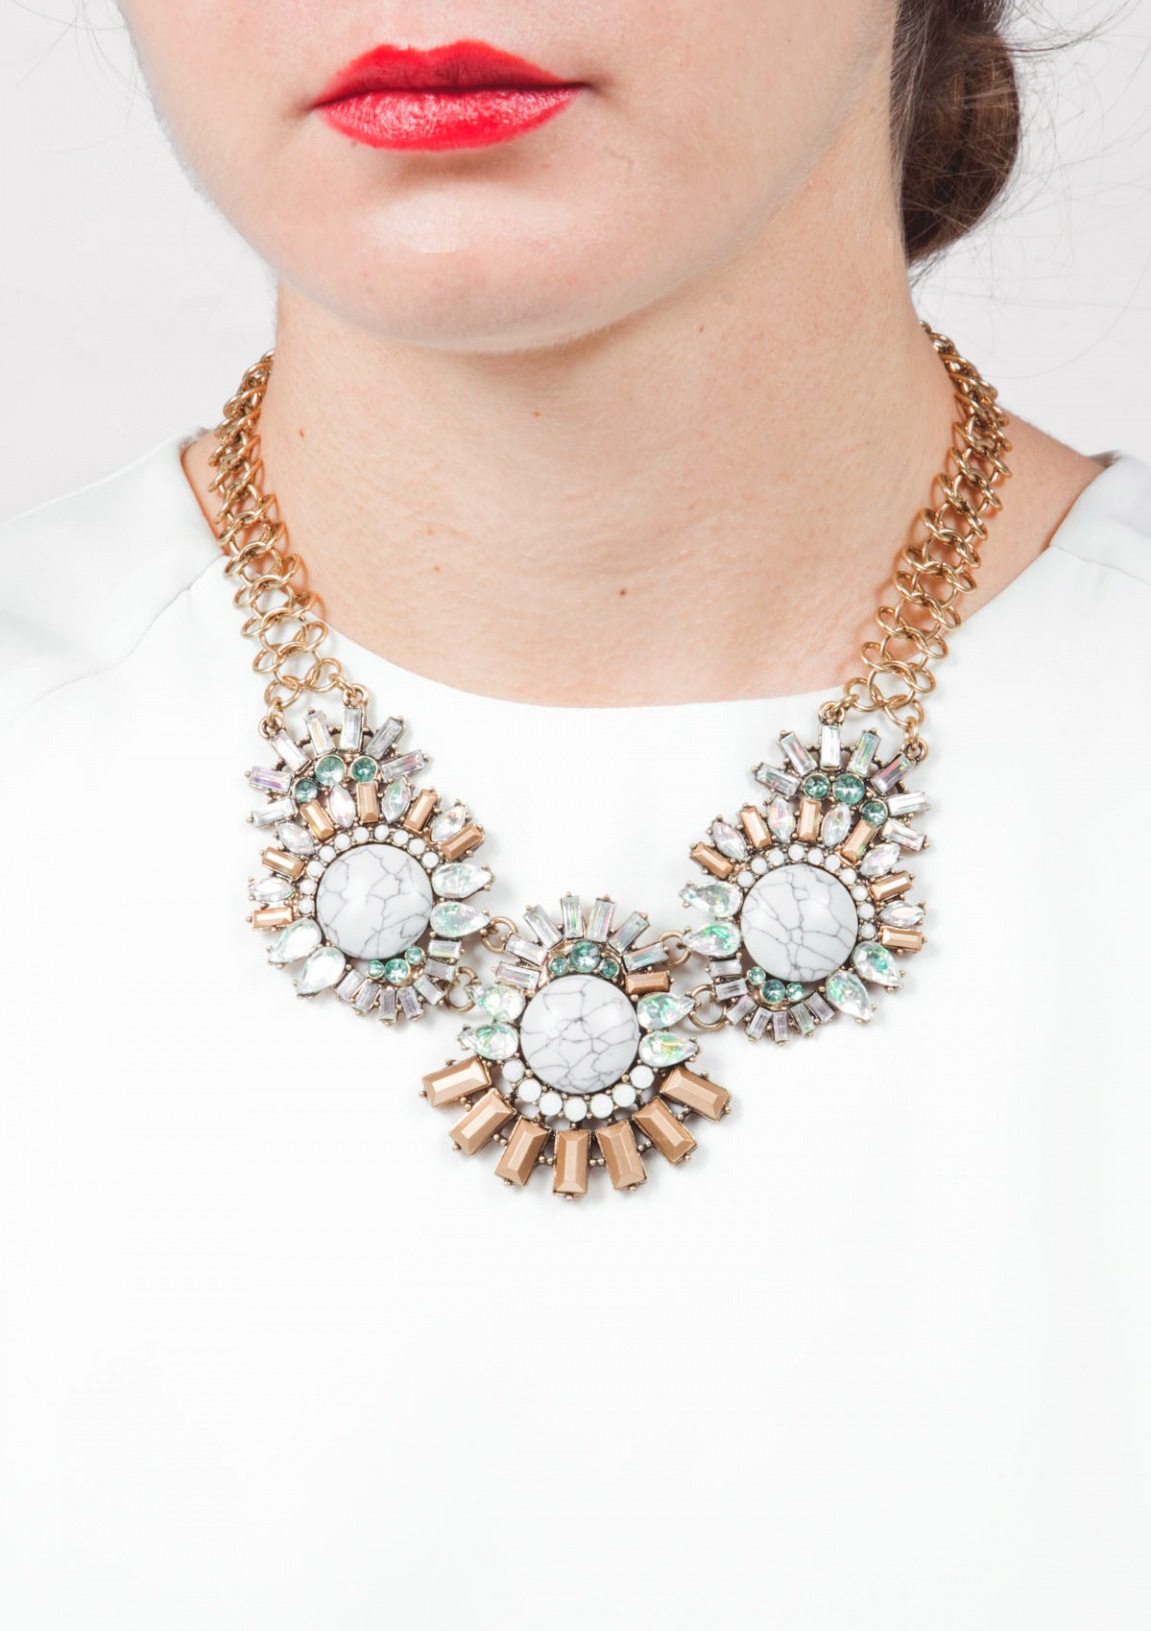 Sparkling Marble Statement Necklace Intended For Recent Sparkling Pattern Necklaces (Gallery 25 of 25)